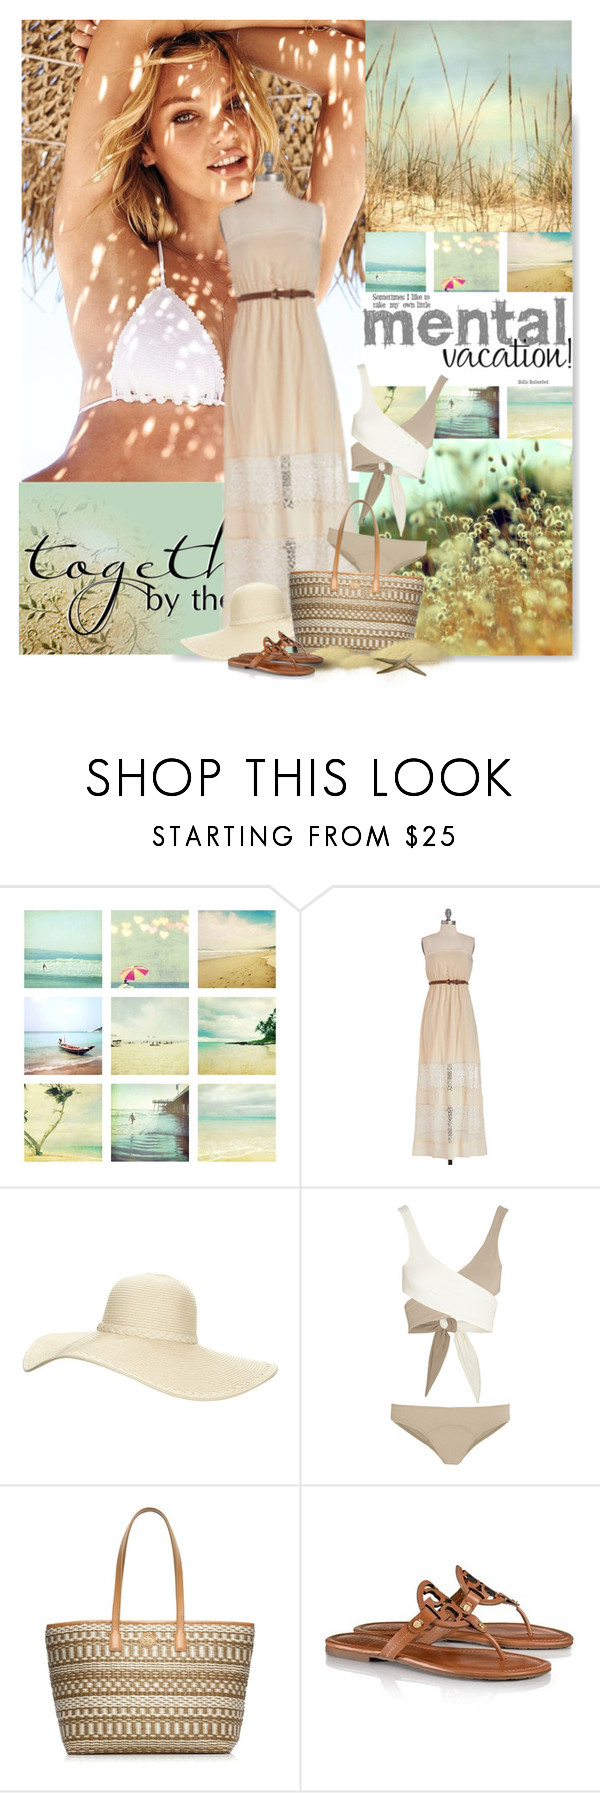 """""""1079"""" by serepunky ❤ liked on Polyvore featuring Victoria's Secret, Reger by Janet Reger, Lisa Marie Fernandez, Tory Burch, hat, maxidress, beachwear, candicecwanepoel and raffiabag"""